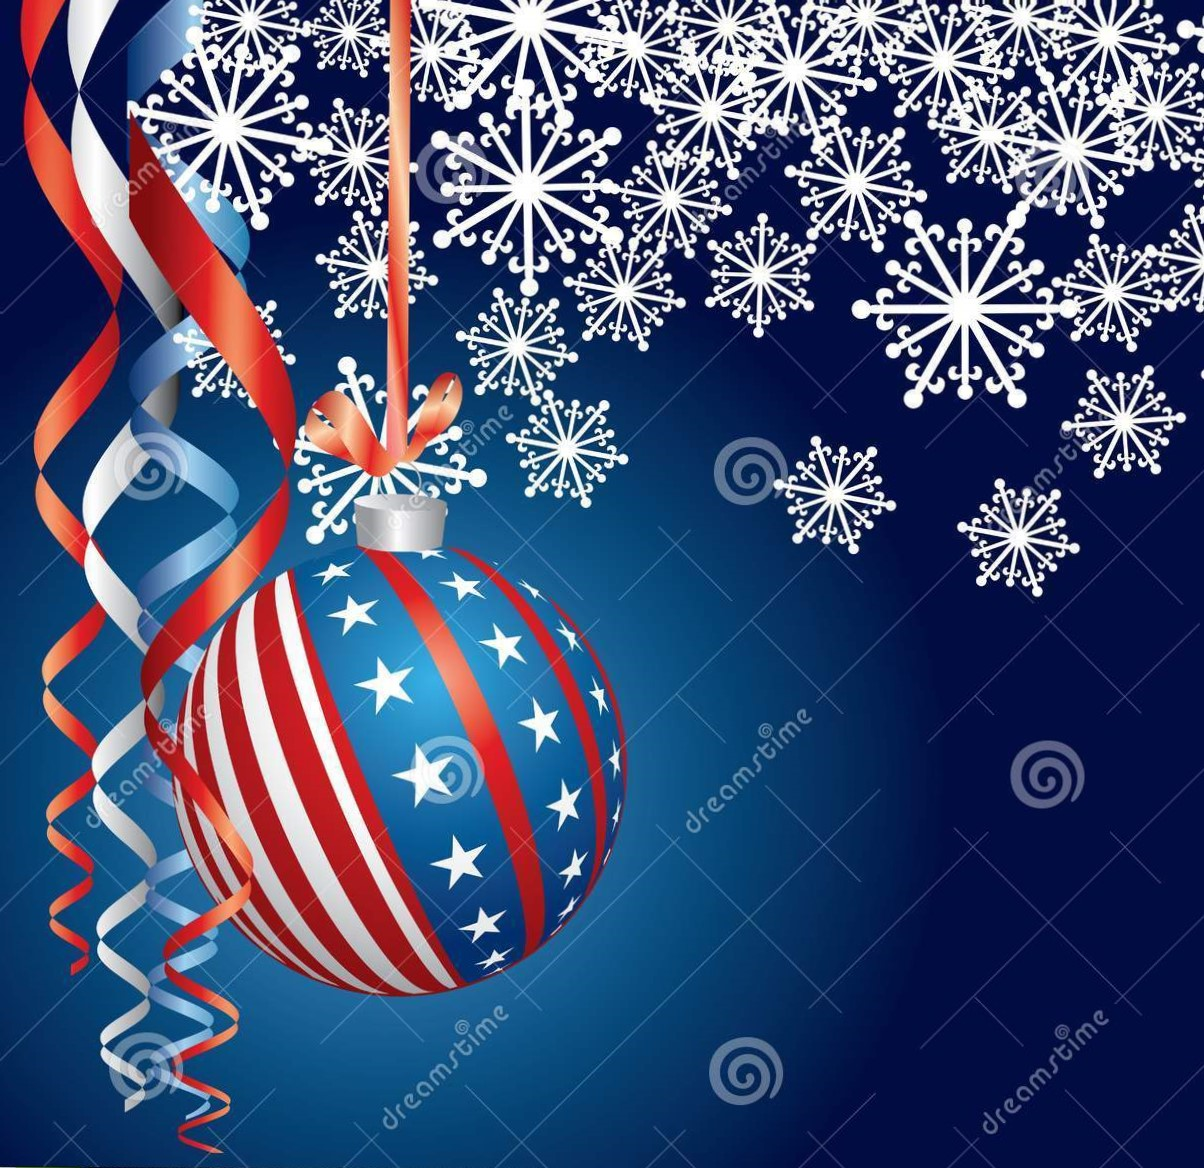 Patriot Christmas decorations